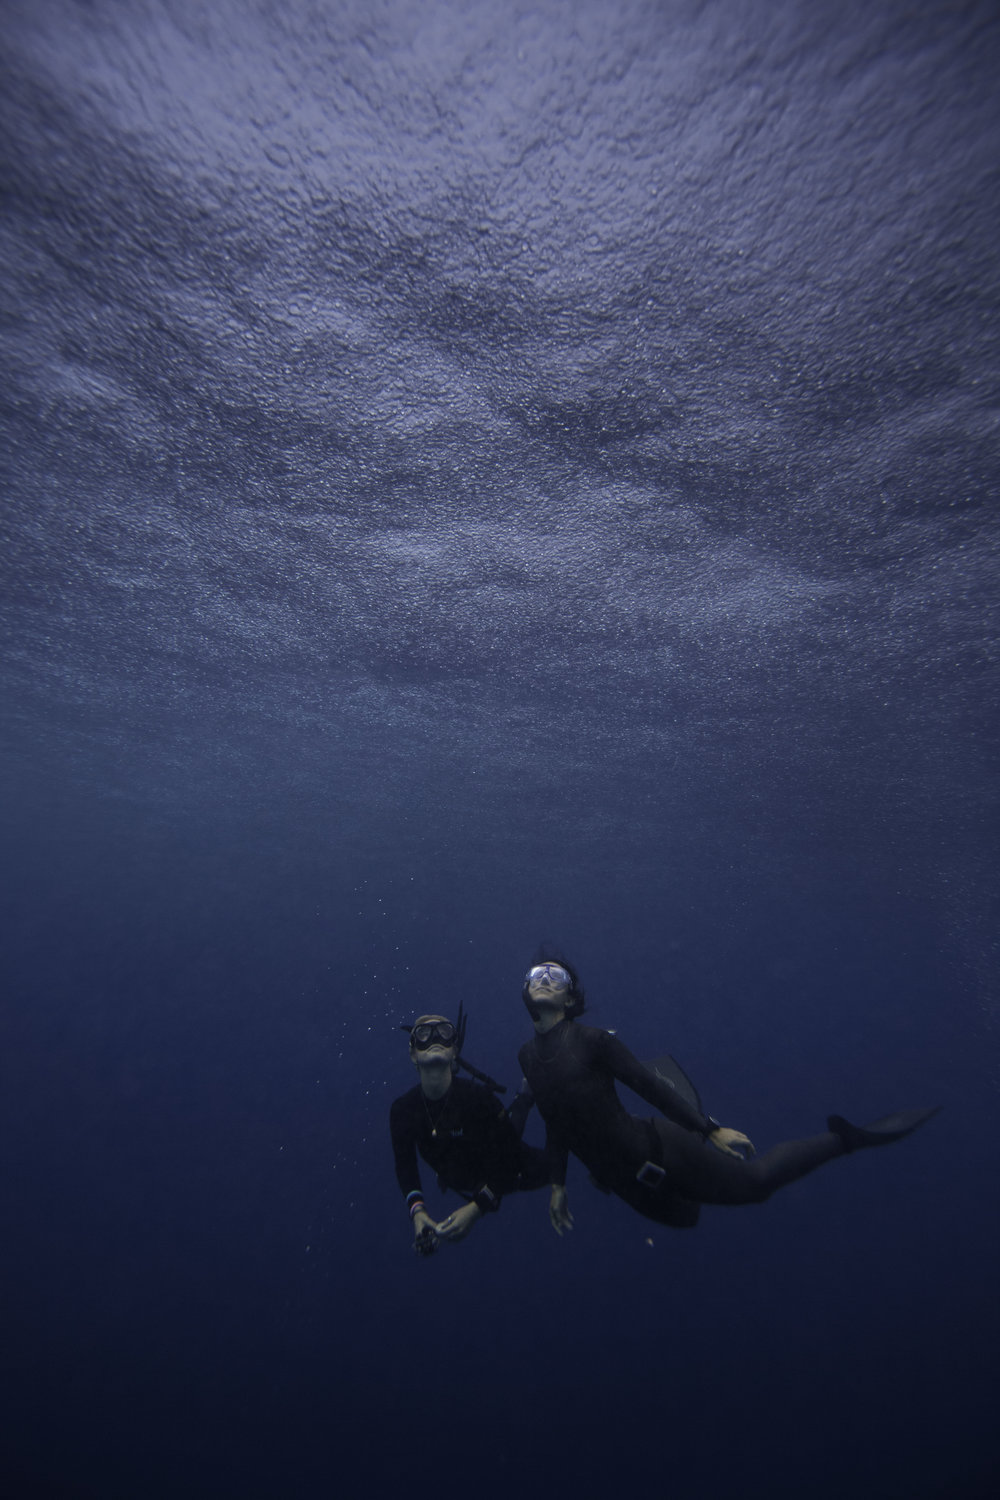 The rain from below - Photographer: Peter Marshall //Freedivers: Hanli Prinsloo & Ocean Ramsay